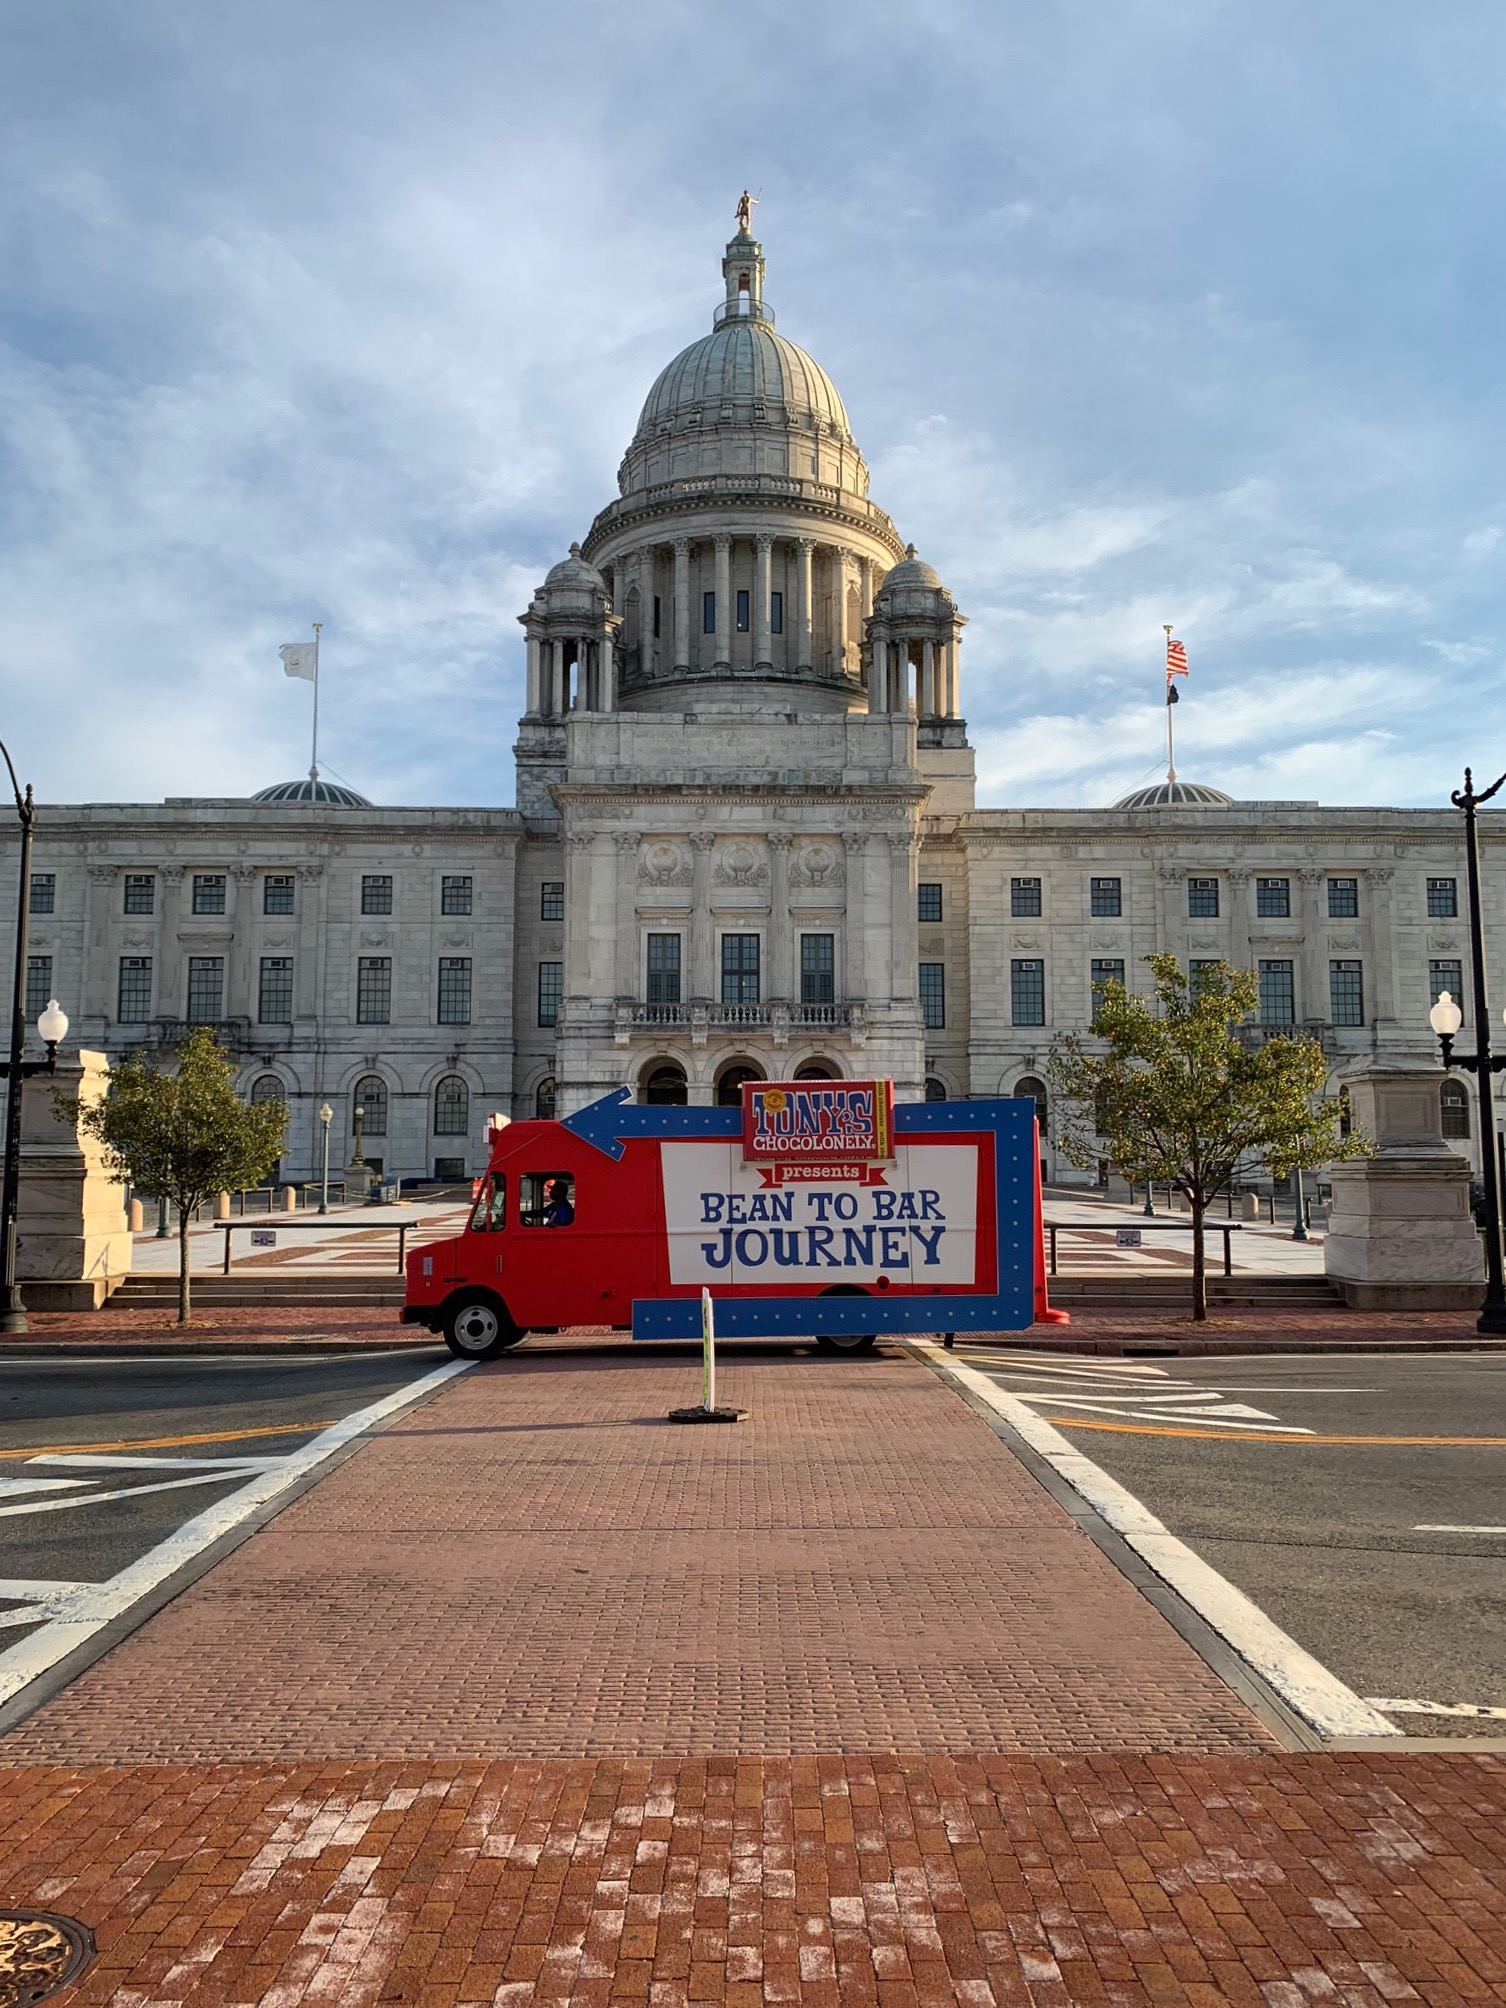 "<span title=""Edited"">If you recognize this state house, you might be in Providence, Rhode Island. If you recognize this Chocotruck, you're probably a Tony's choco fan. If you're both, come see the Chocotruck in RI this week! Here's where we'll be:<br /><br />September 25th: URI 2 - 6:30pm<br />September 26th: Honest Green Market 11am - 4pm<br />September 27th: Yale 12 - 8pm<br />September 28th: Waterfire 5 - 11pm<br />September 29th: Brown University 11:30am - 3:30pm</span>"